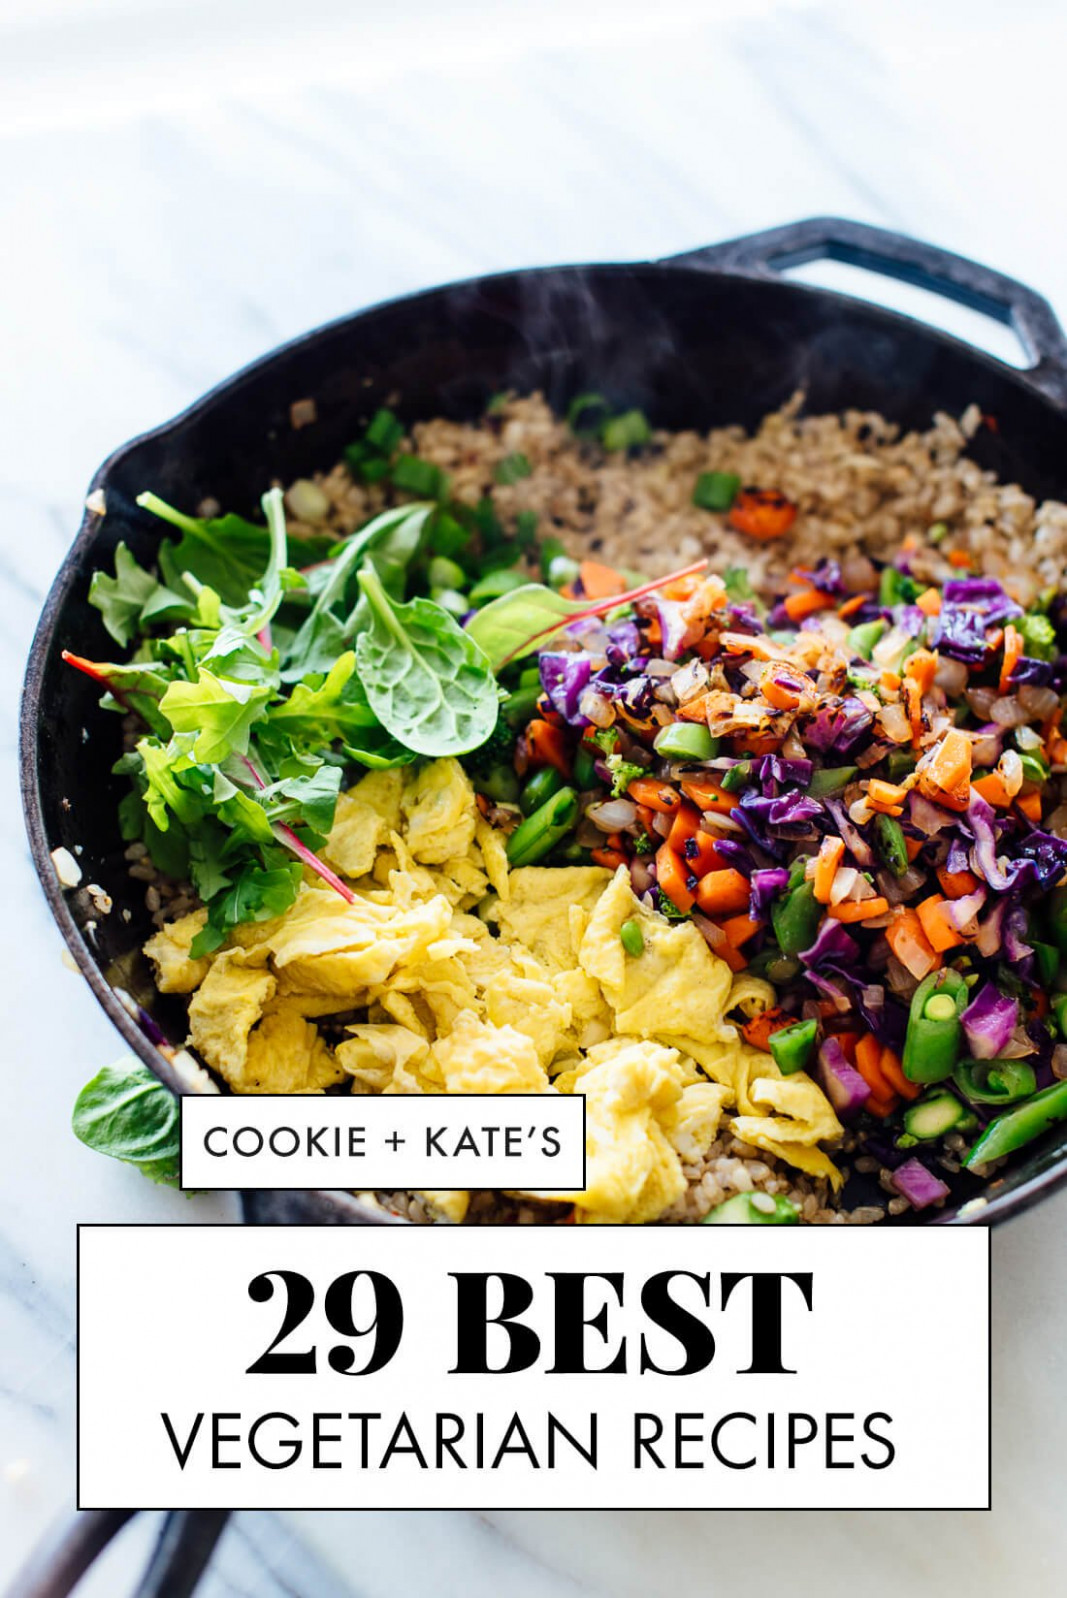 11 Best Vegetarian Recipes - Cookie and Kate - ultimate recipes vegetarian